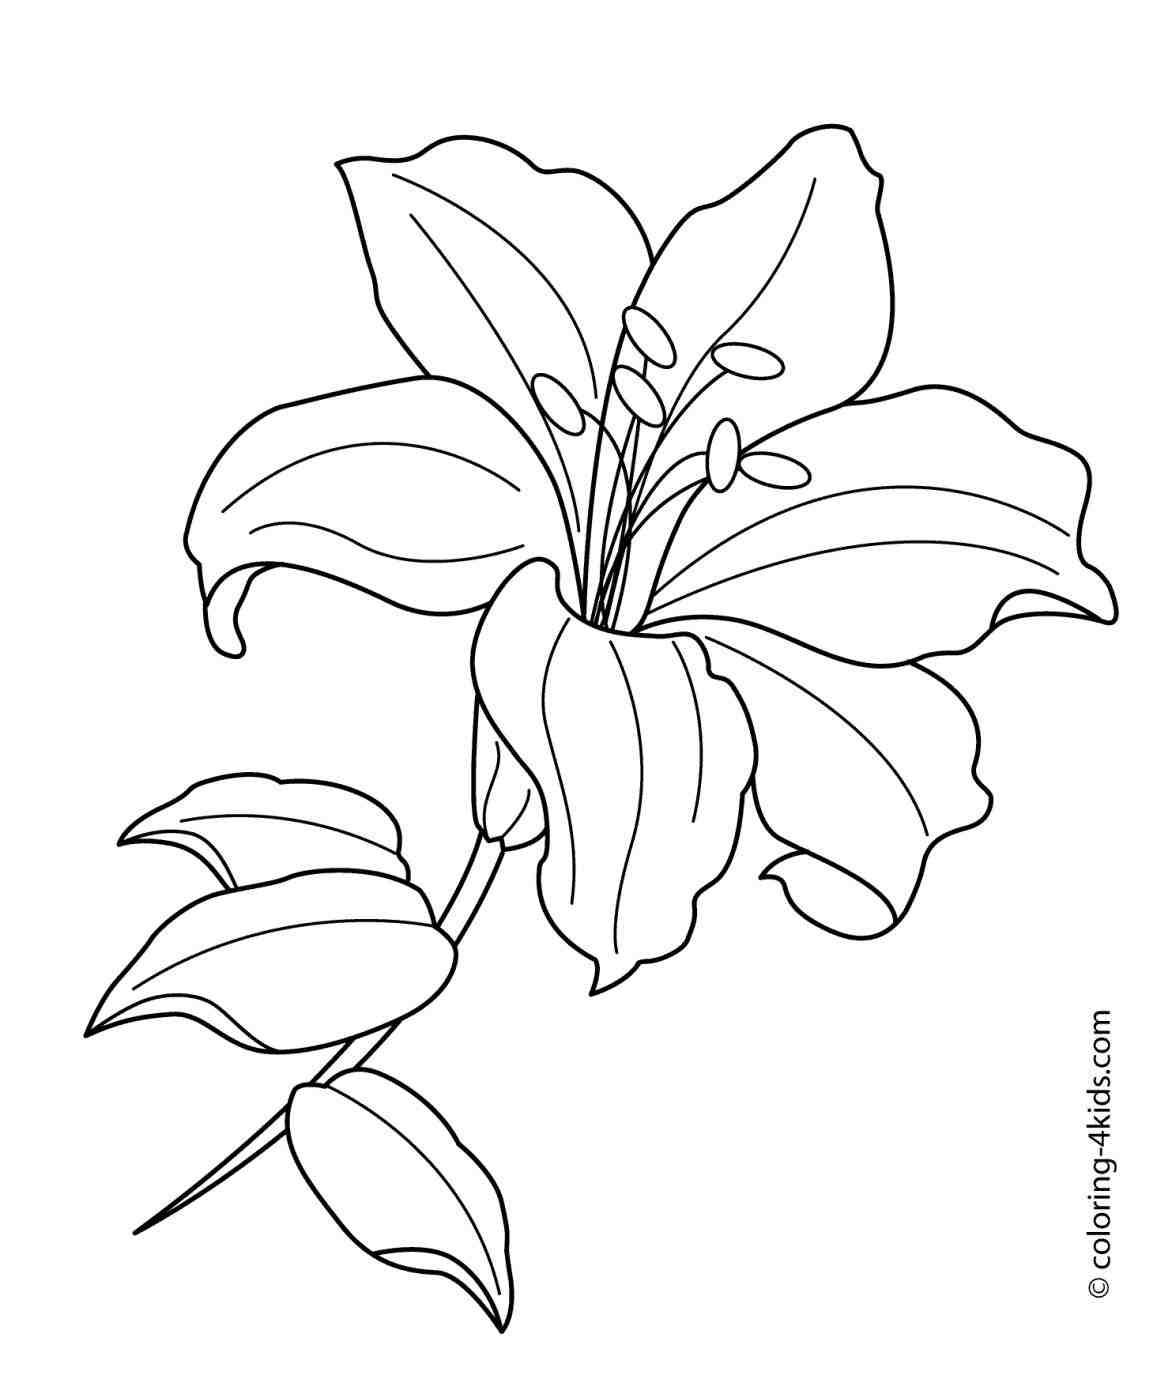 Drawing Coloring Outline Lily Flowers Pictures Picturesboss